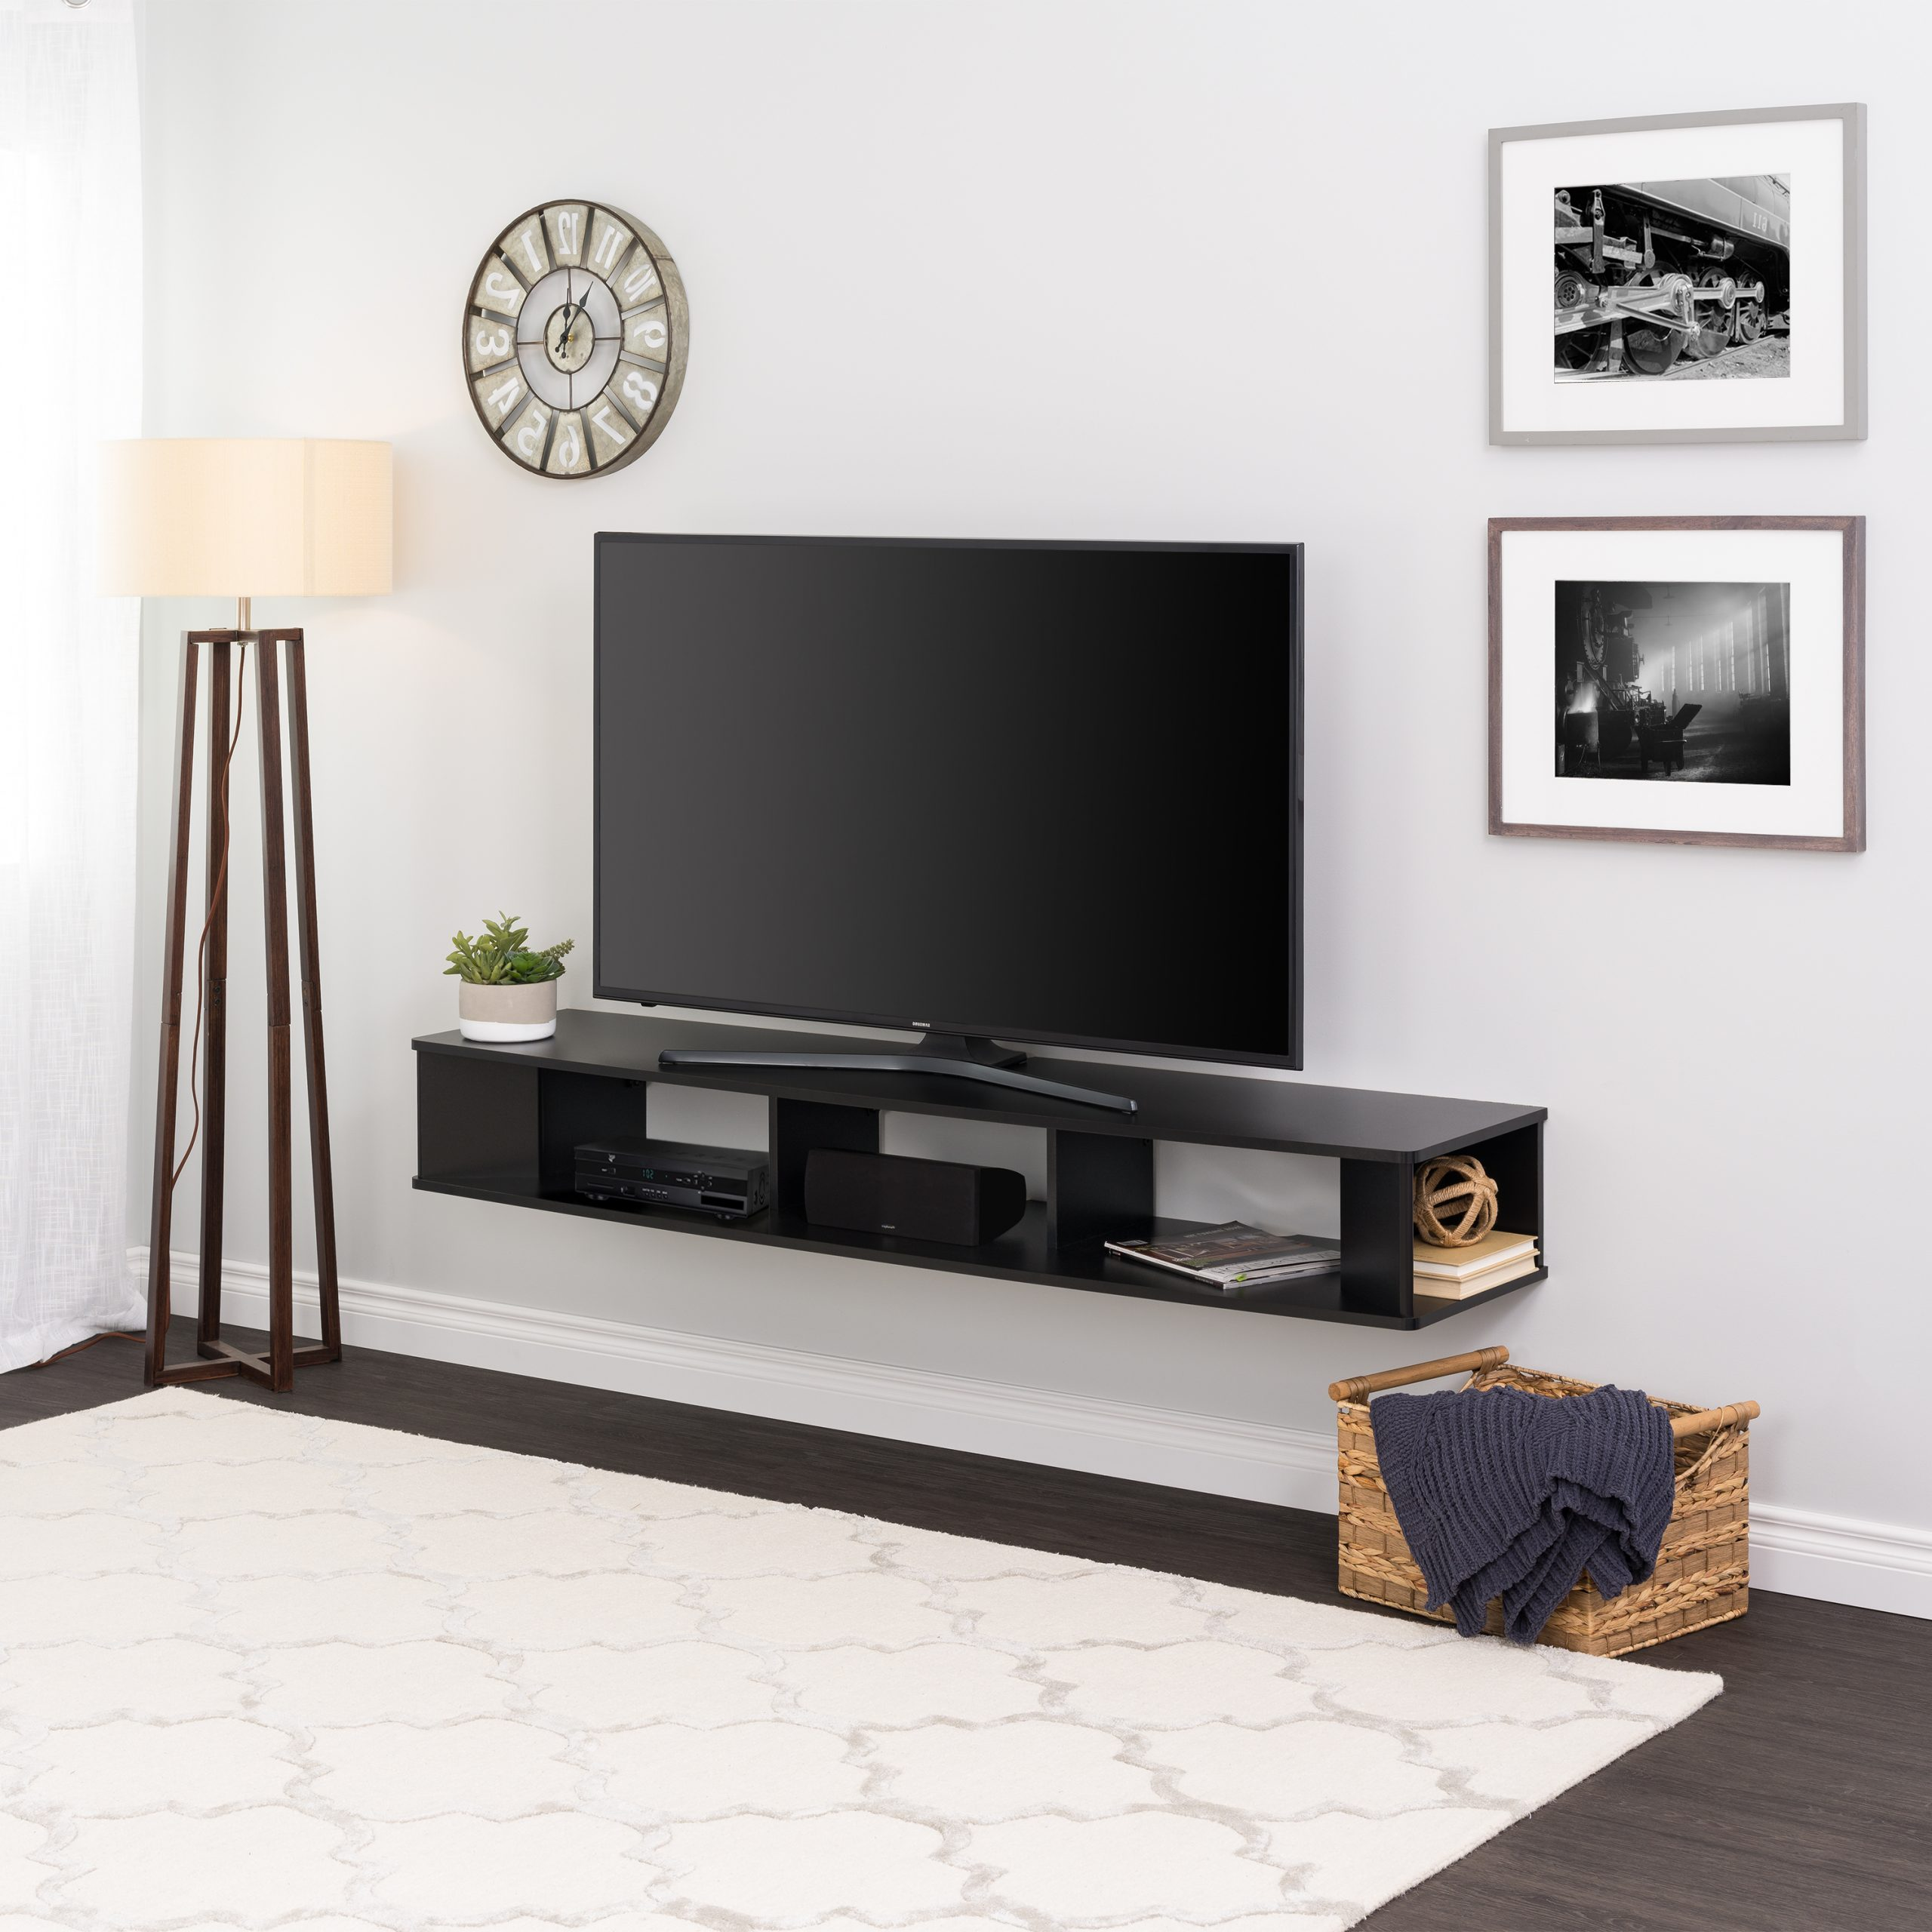 Prepac 70 Inch Wide Wall Mounted Tv Stand, Black – Walmart With Regard To Anya Wide Tv Stands (View 1 of 20)